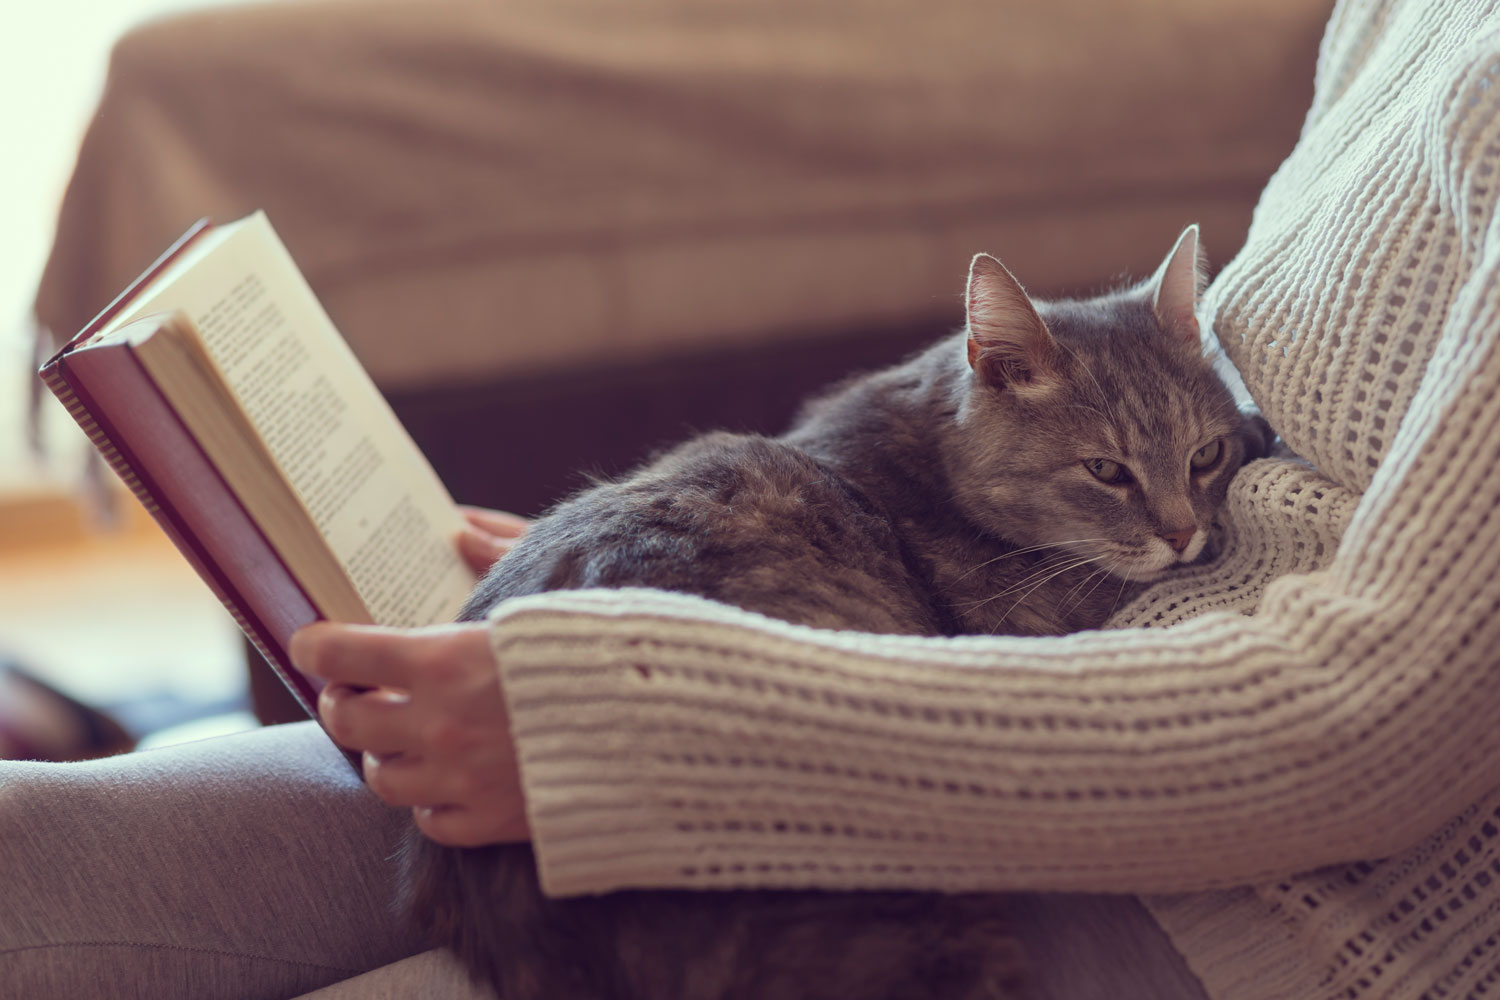 A cute tabby cat lying on her owners belly while her owner is reading a book